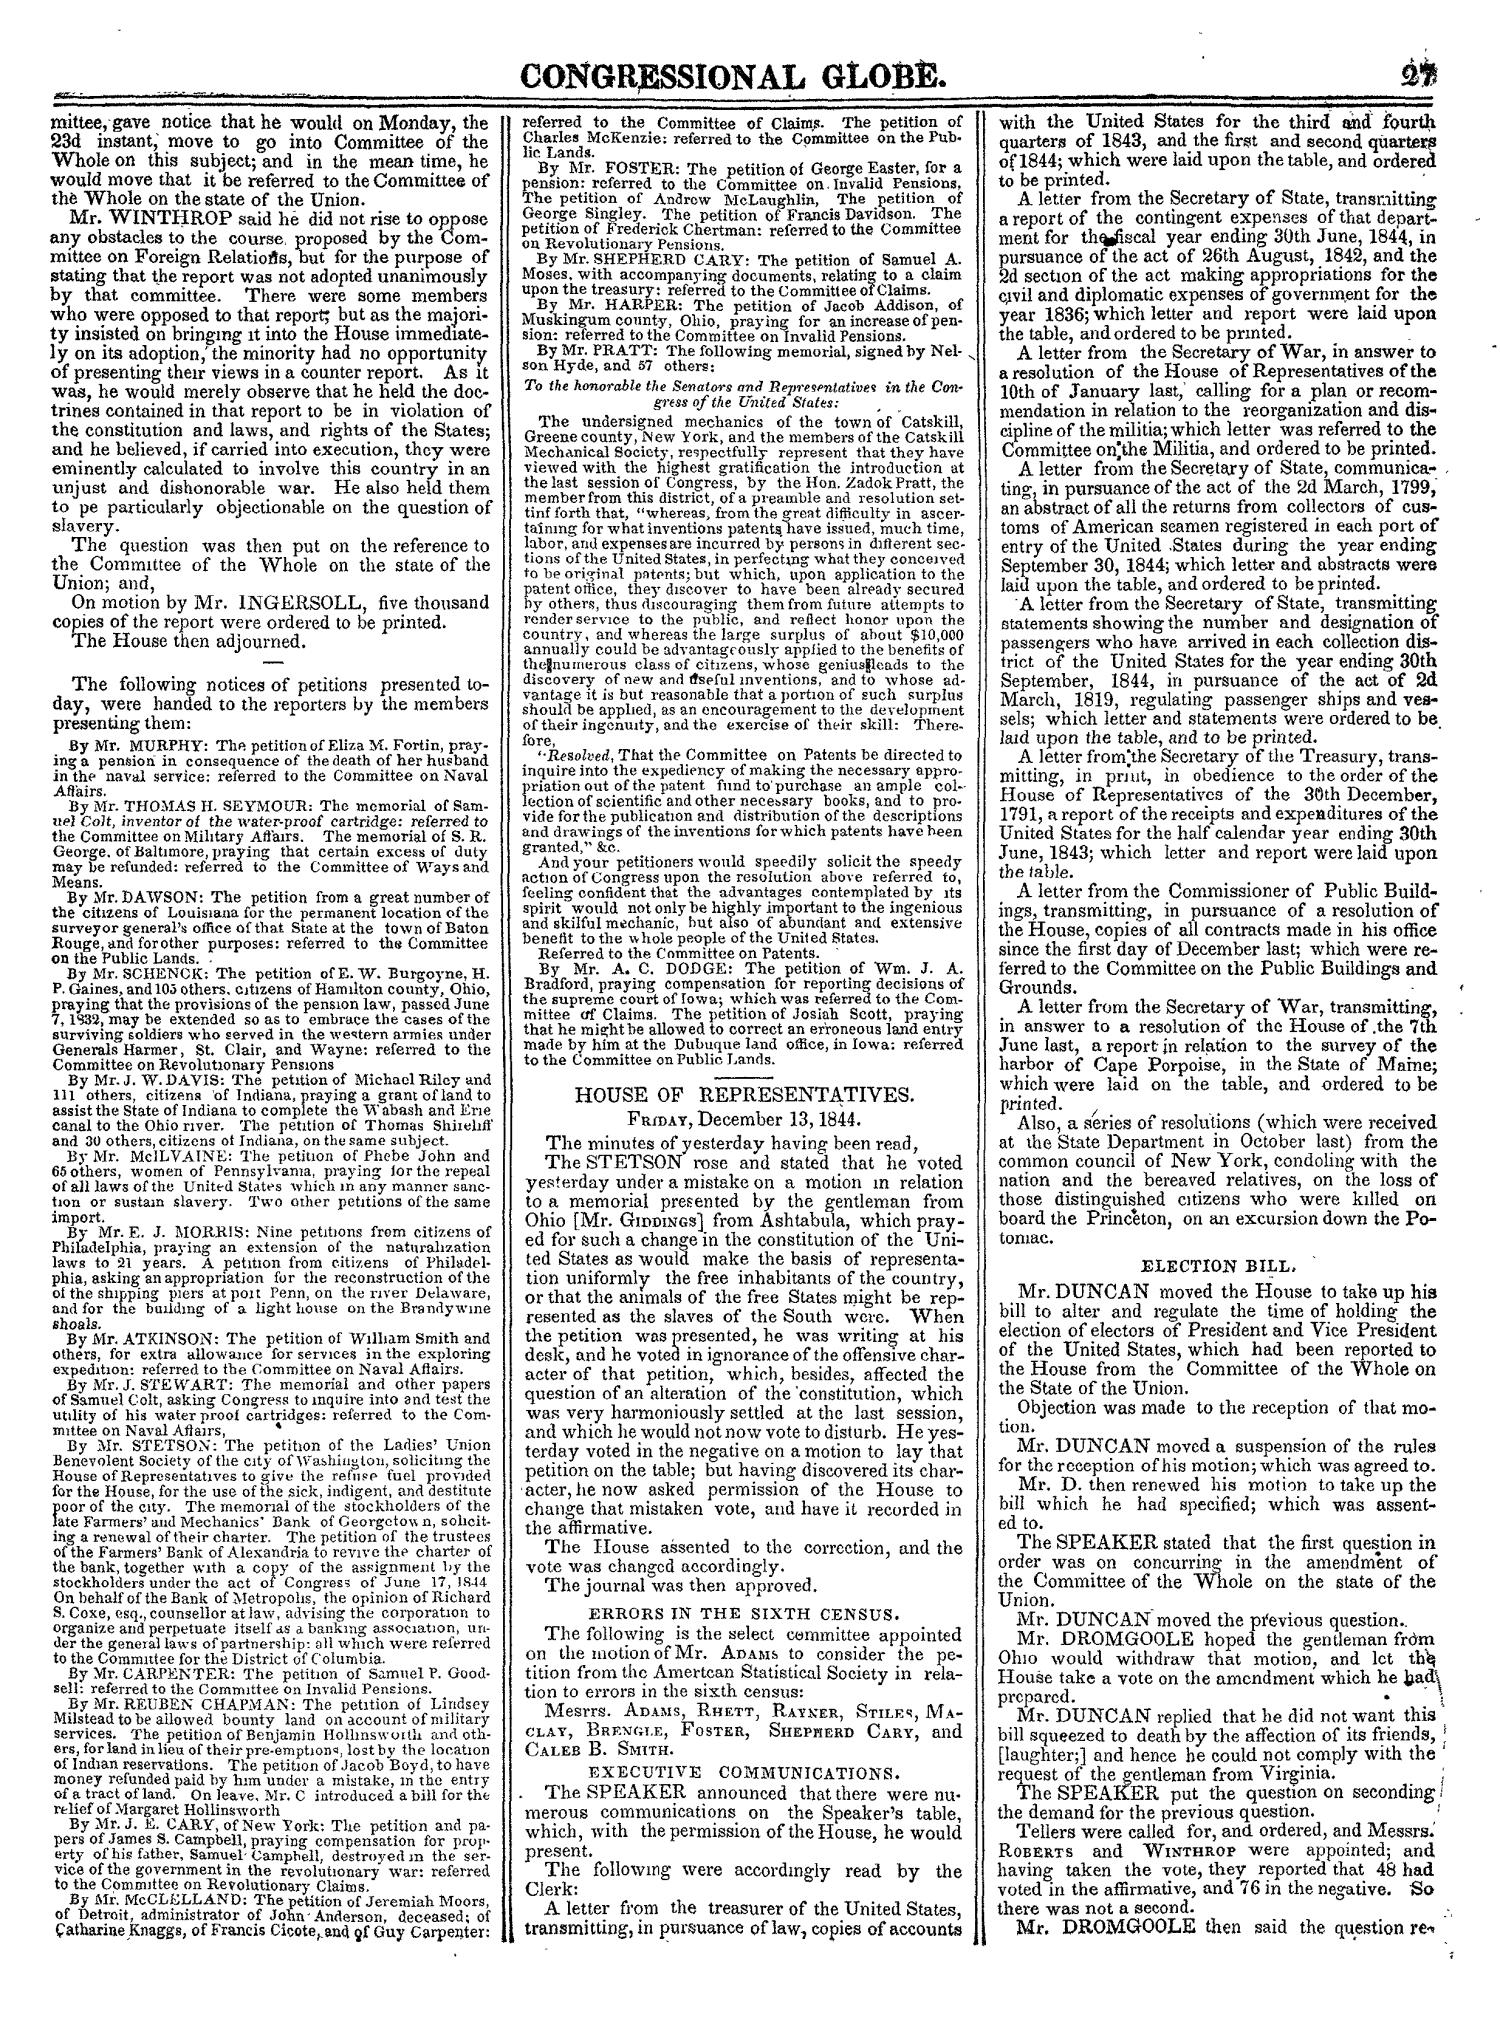 The Congressional Globe, Volume 14: Twenty-Eighth Congress, Second Session                                                                                                      27